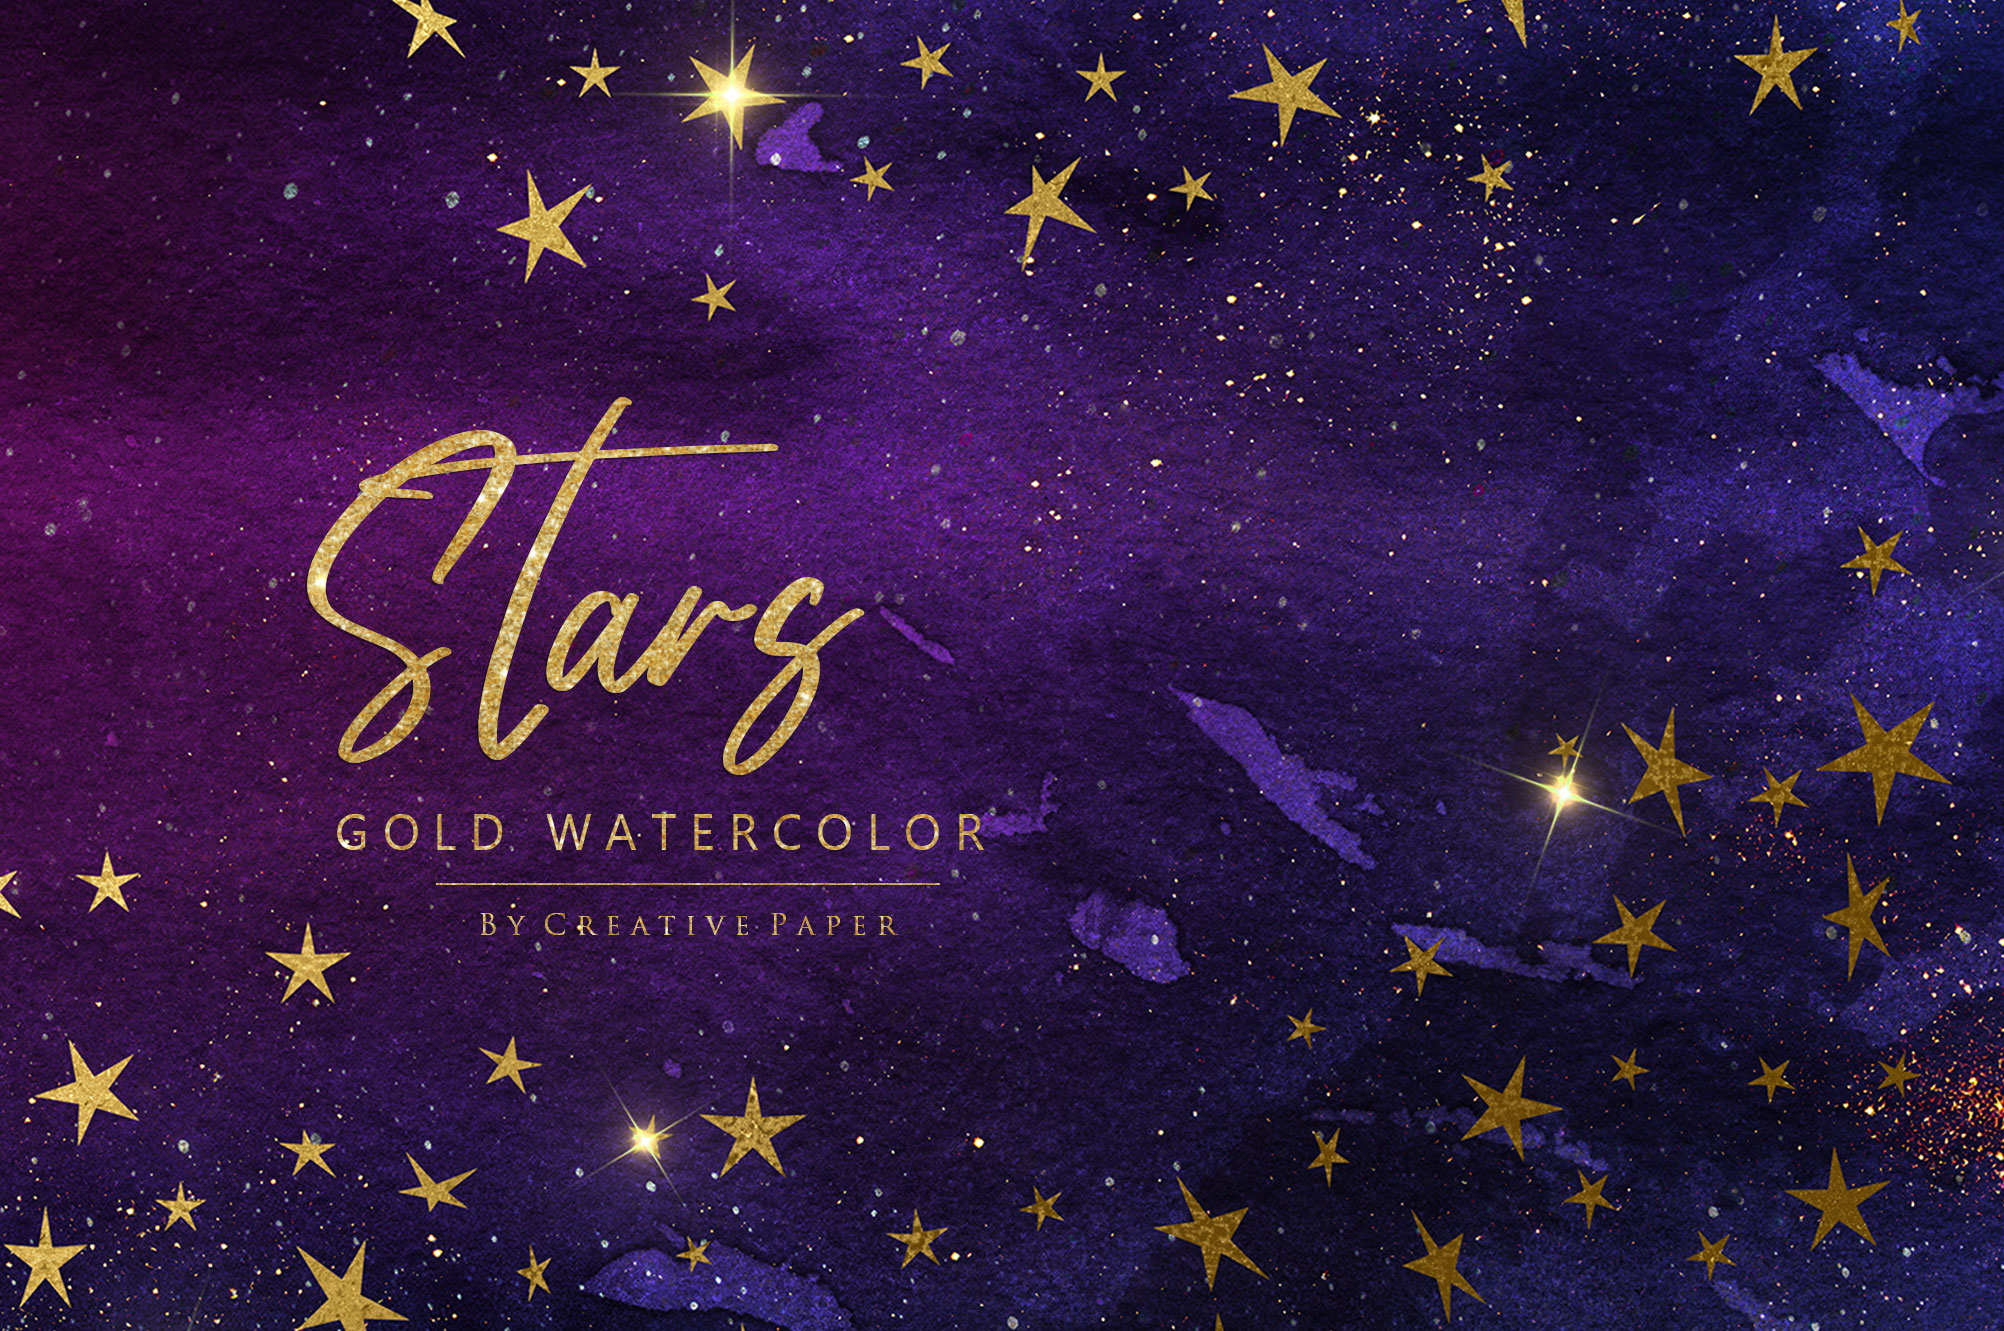 Watercolor Gold Stars and Galaxy Backgrounds example image 1